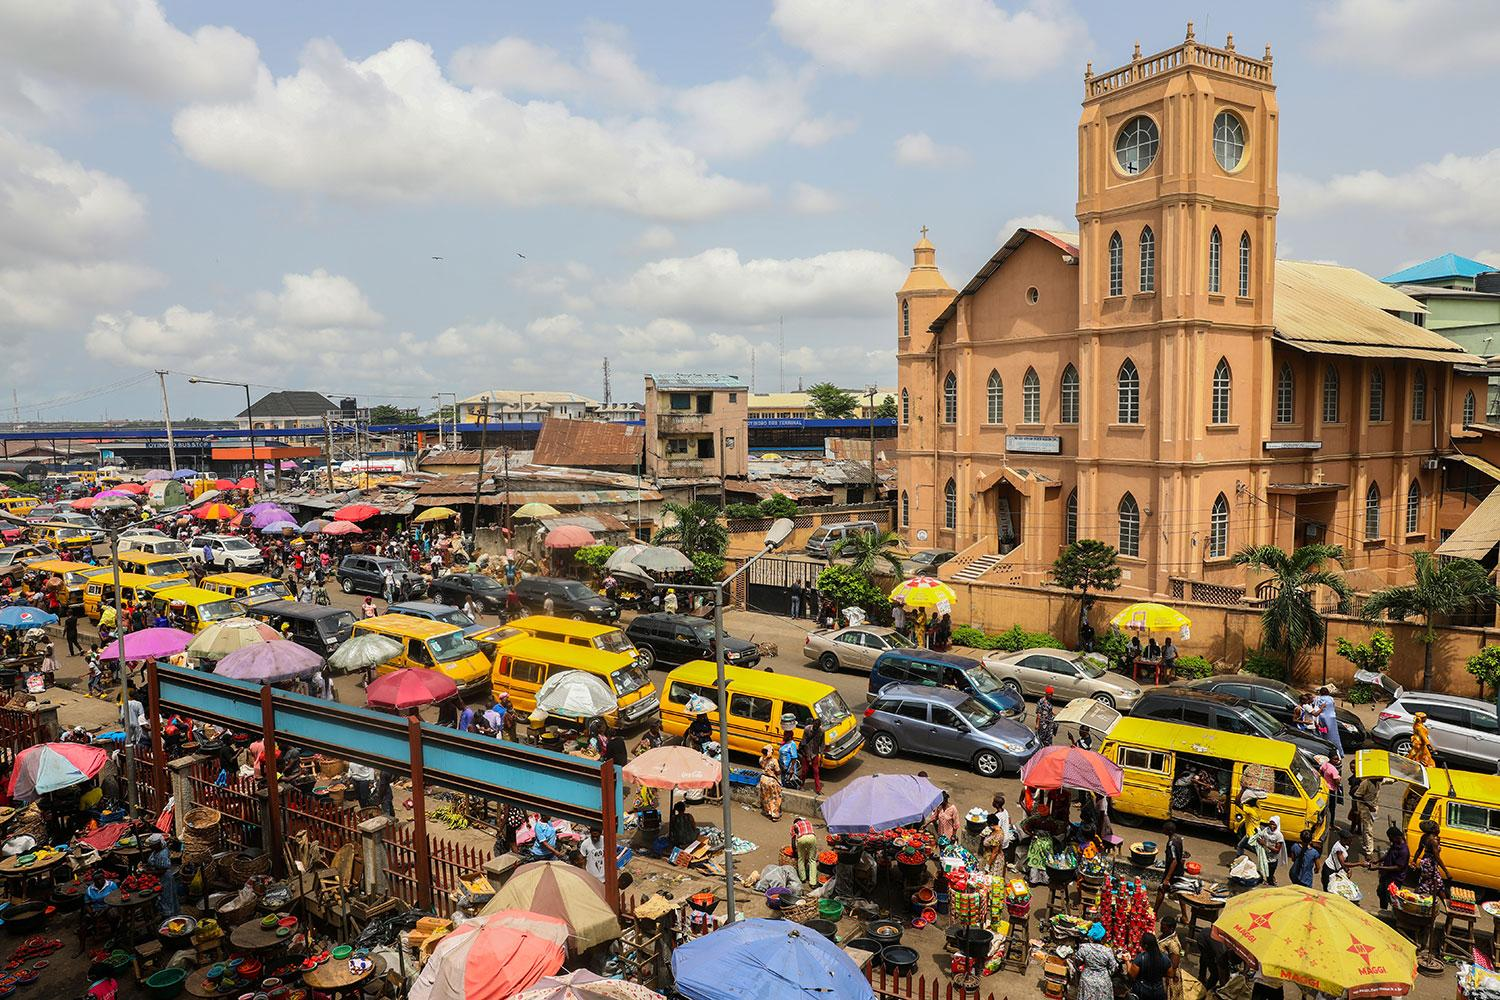 A general view of a food market after Nigeria's President Muhammadu Buhari called for a lockdown starting the same day to limit the spread of coronavirus in Lagos, Nigeria on March 30, 2020. The picture shows a market bustling with trade. REUTERS/Temilade Adelaja